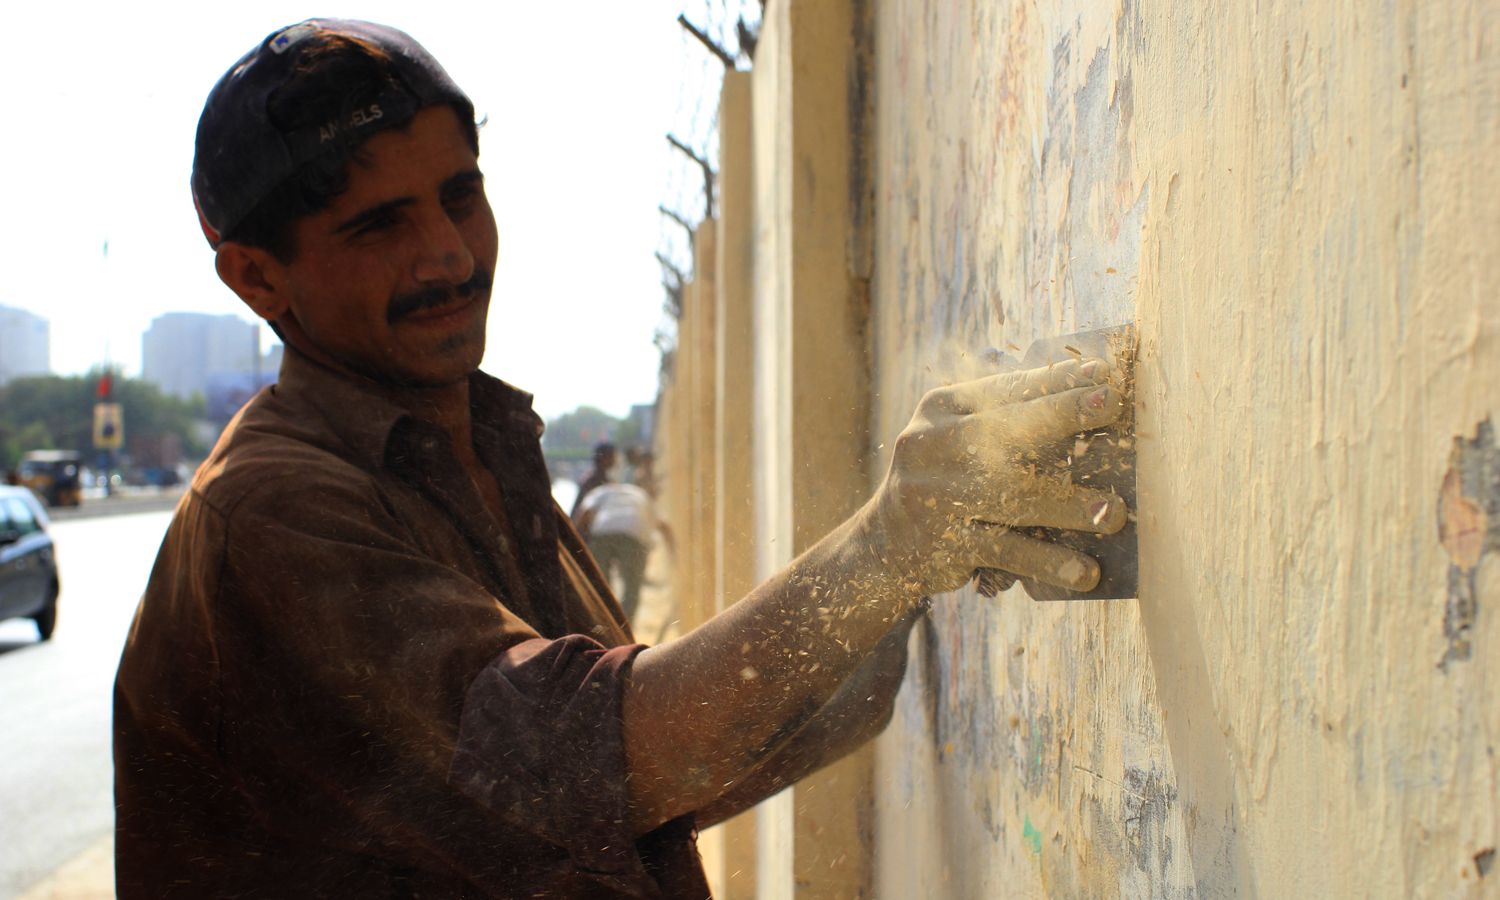 5562cfe03b910?r156890857 - When hate on the wall disappears in Karachi